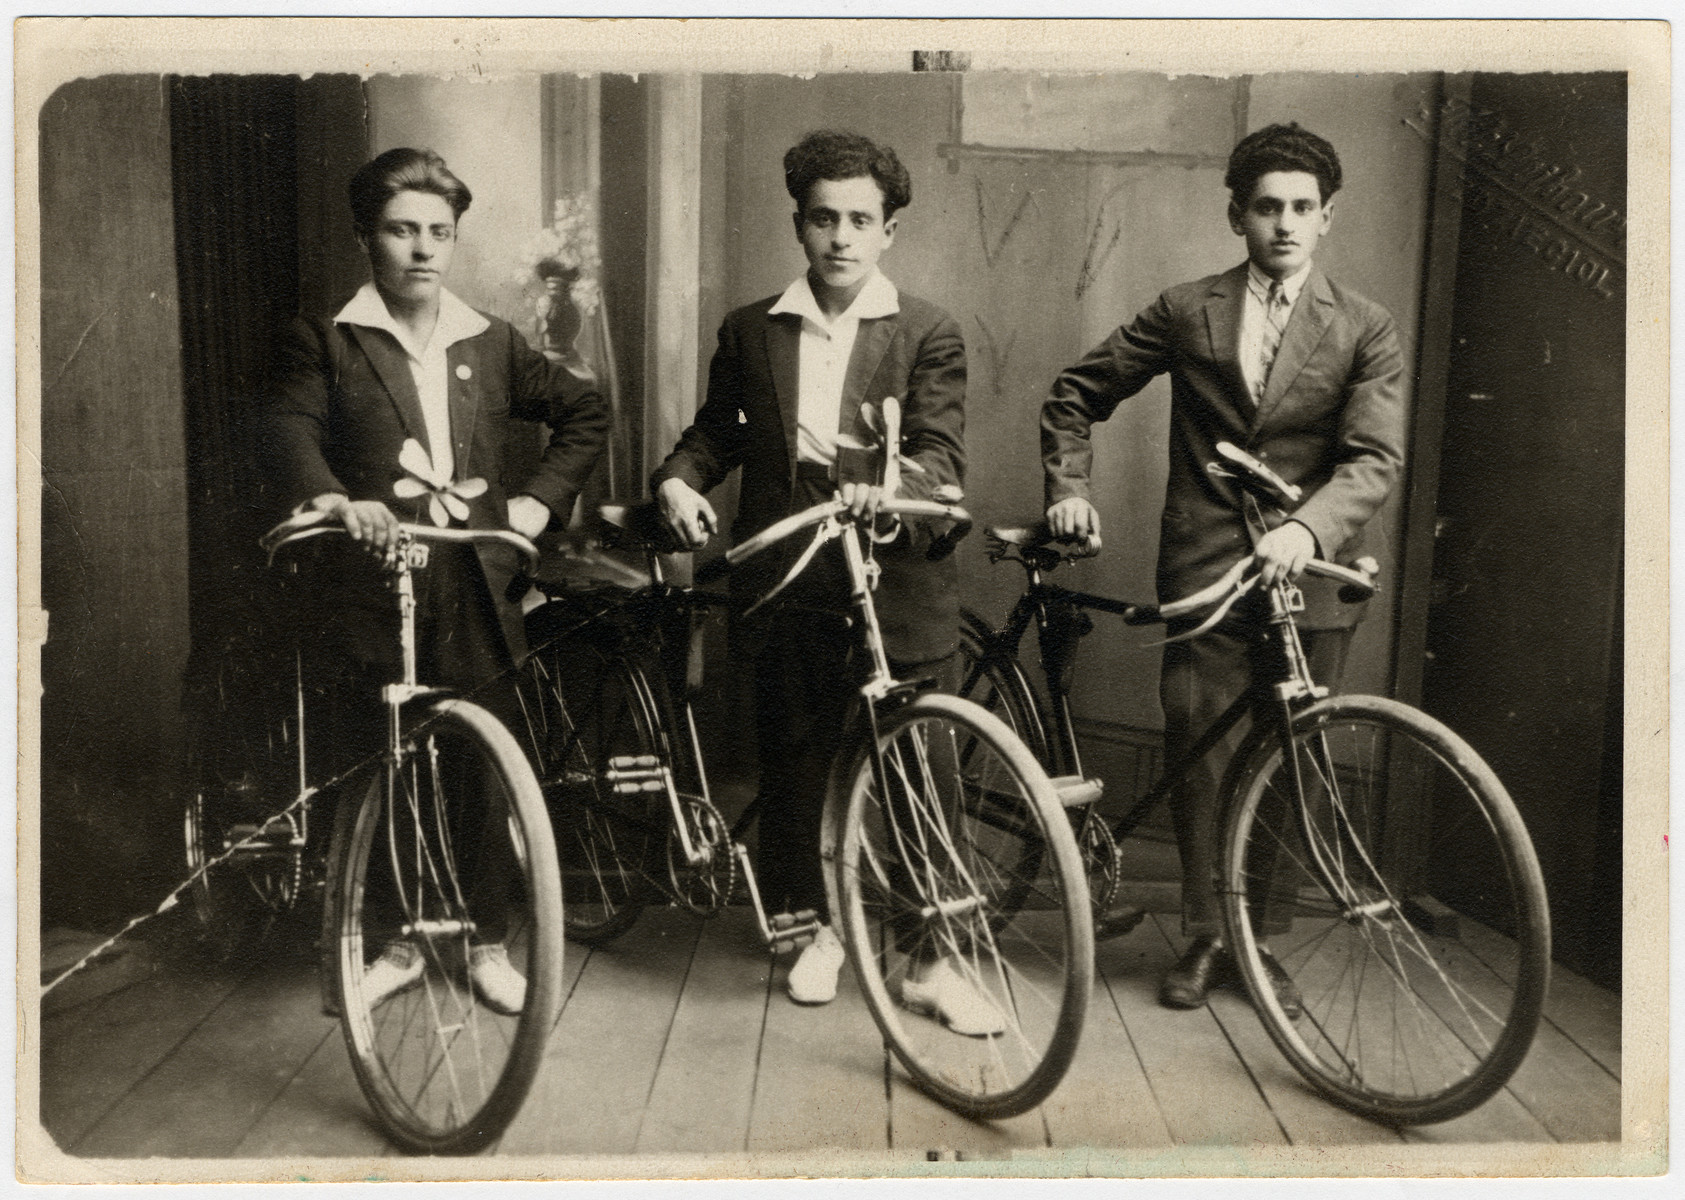 Studio portrait of three young men with their bicycles.  Shlamke Minuskin is pictured at the left.